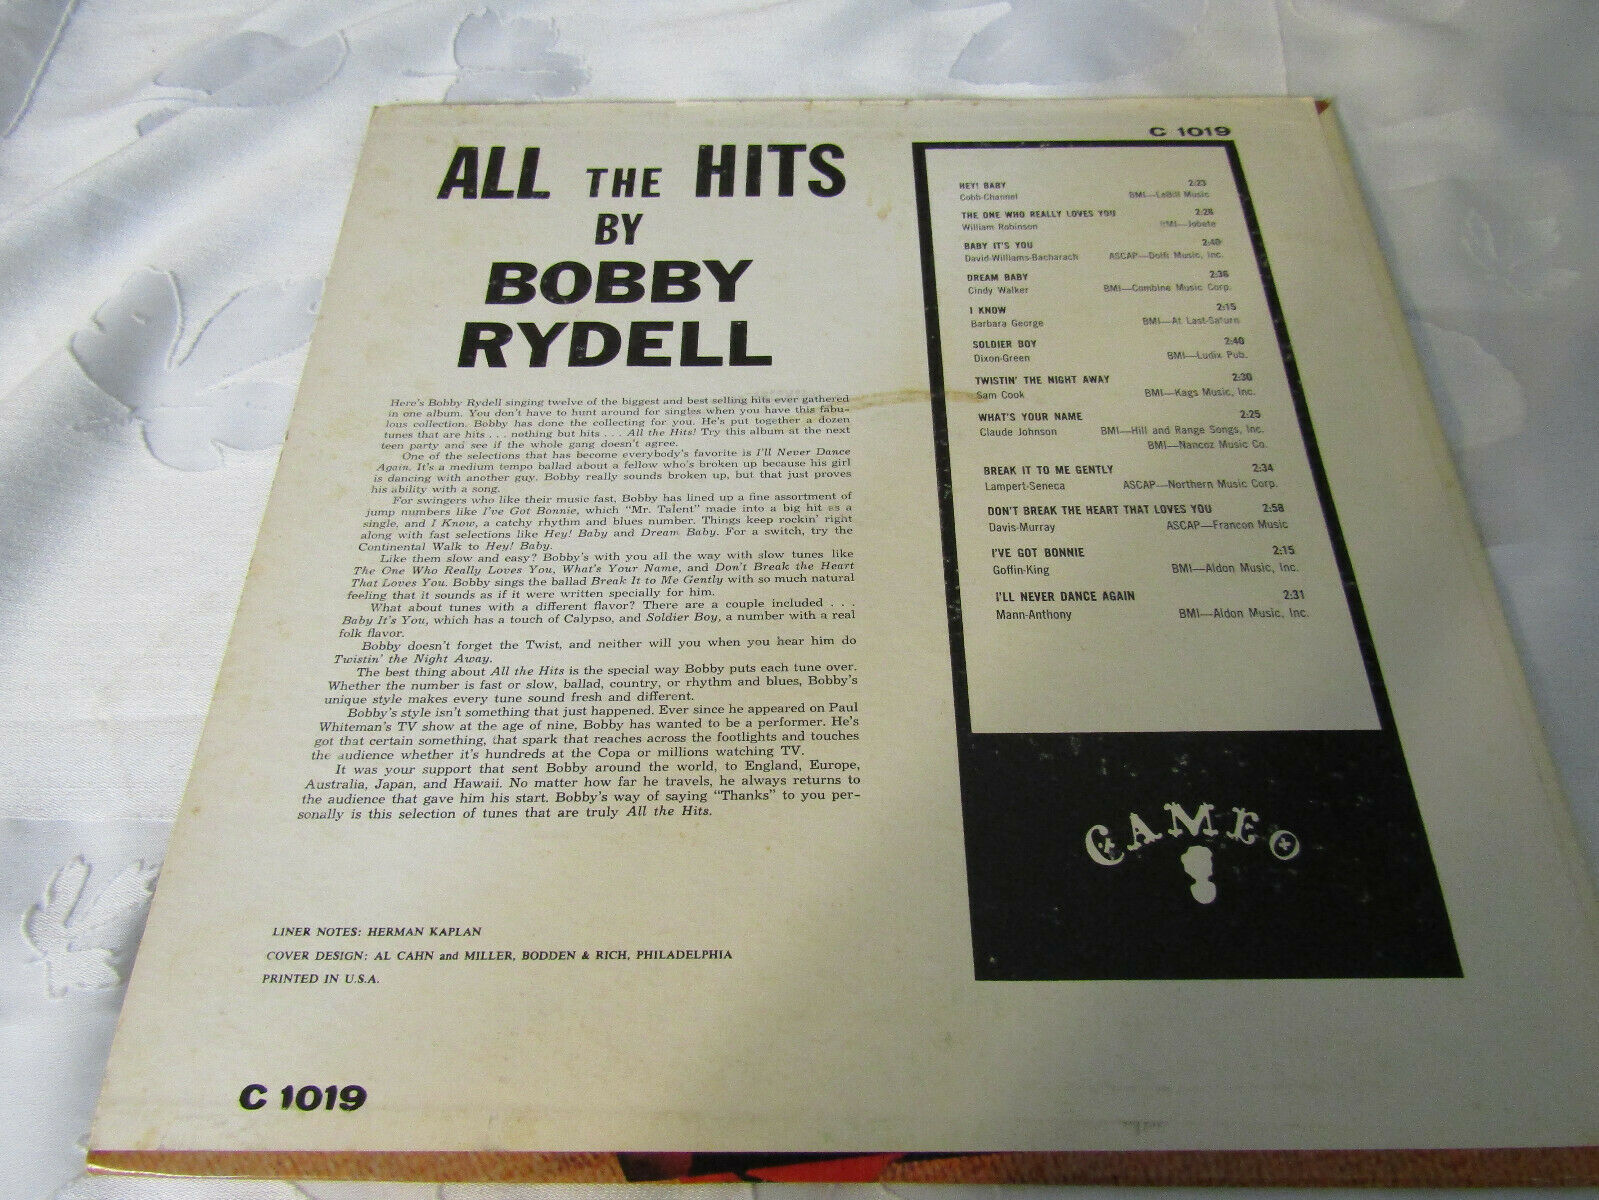 Bobby Rydell All The Hits Cameo C1019 Mono Vinyl Record LP Album image 3